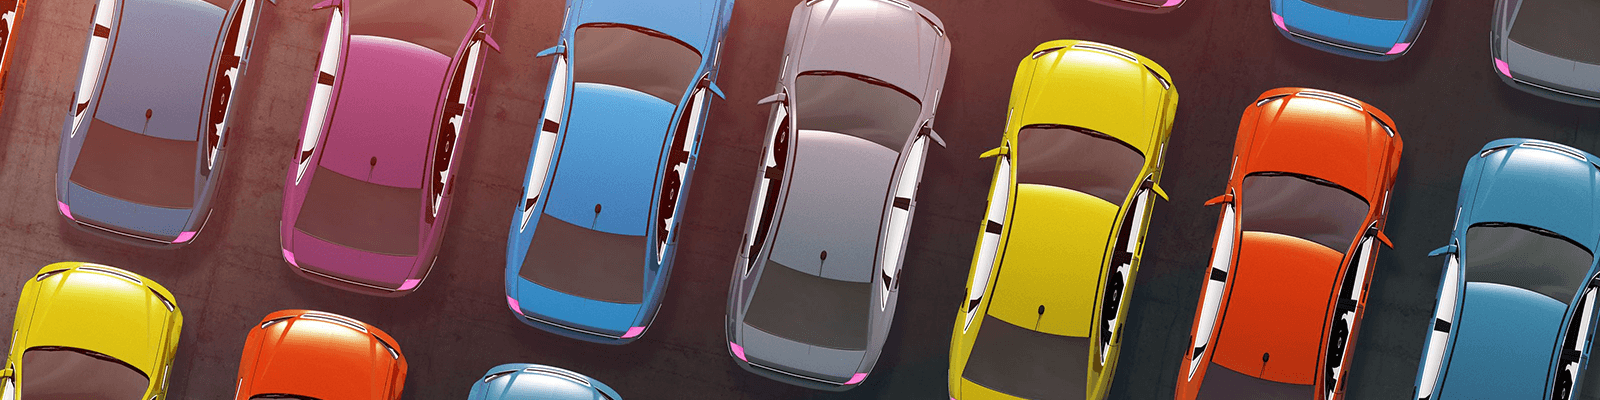 Track Your Autos - Connected Dealer Services Dealer Inventory Management Tool